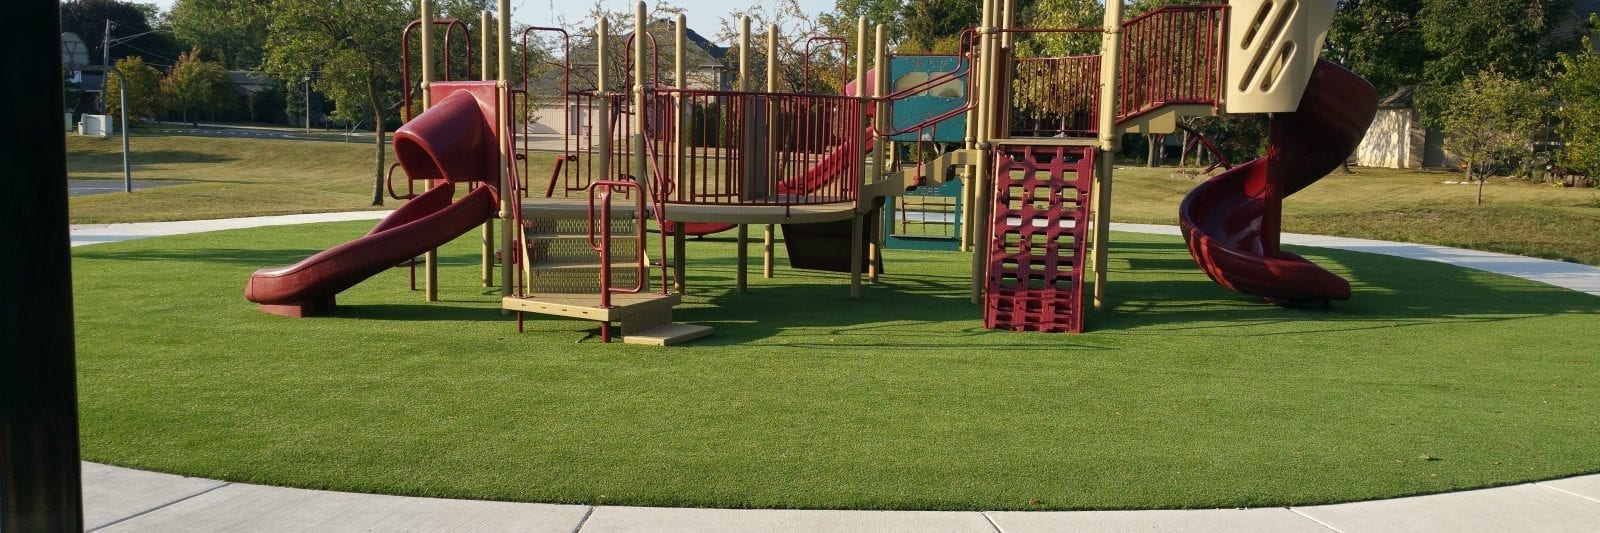 Playground in Itasca using PerfectPlay playground safety system